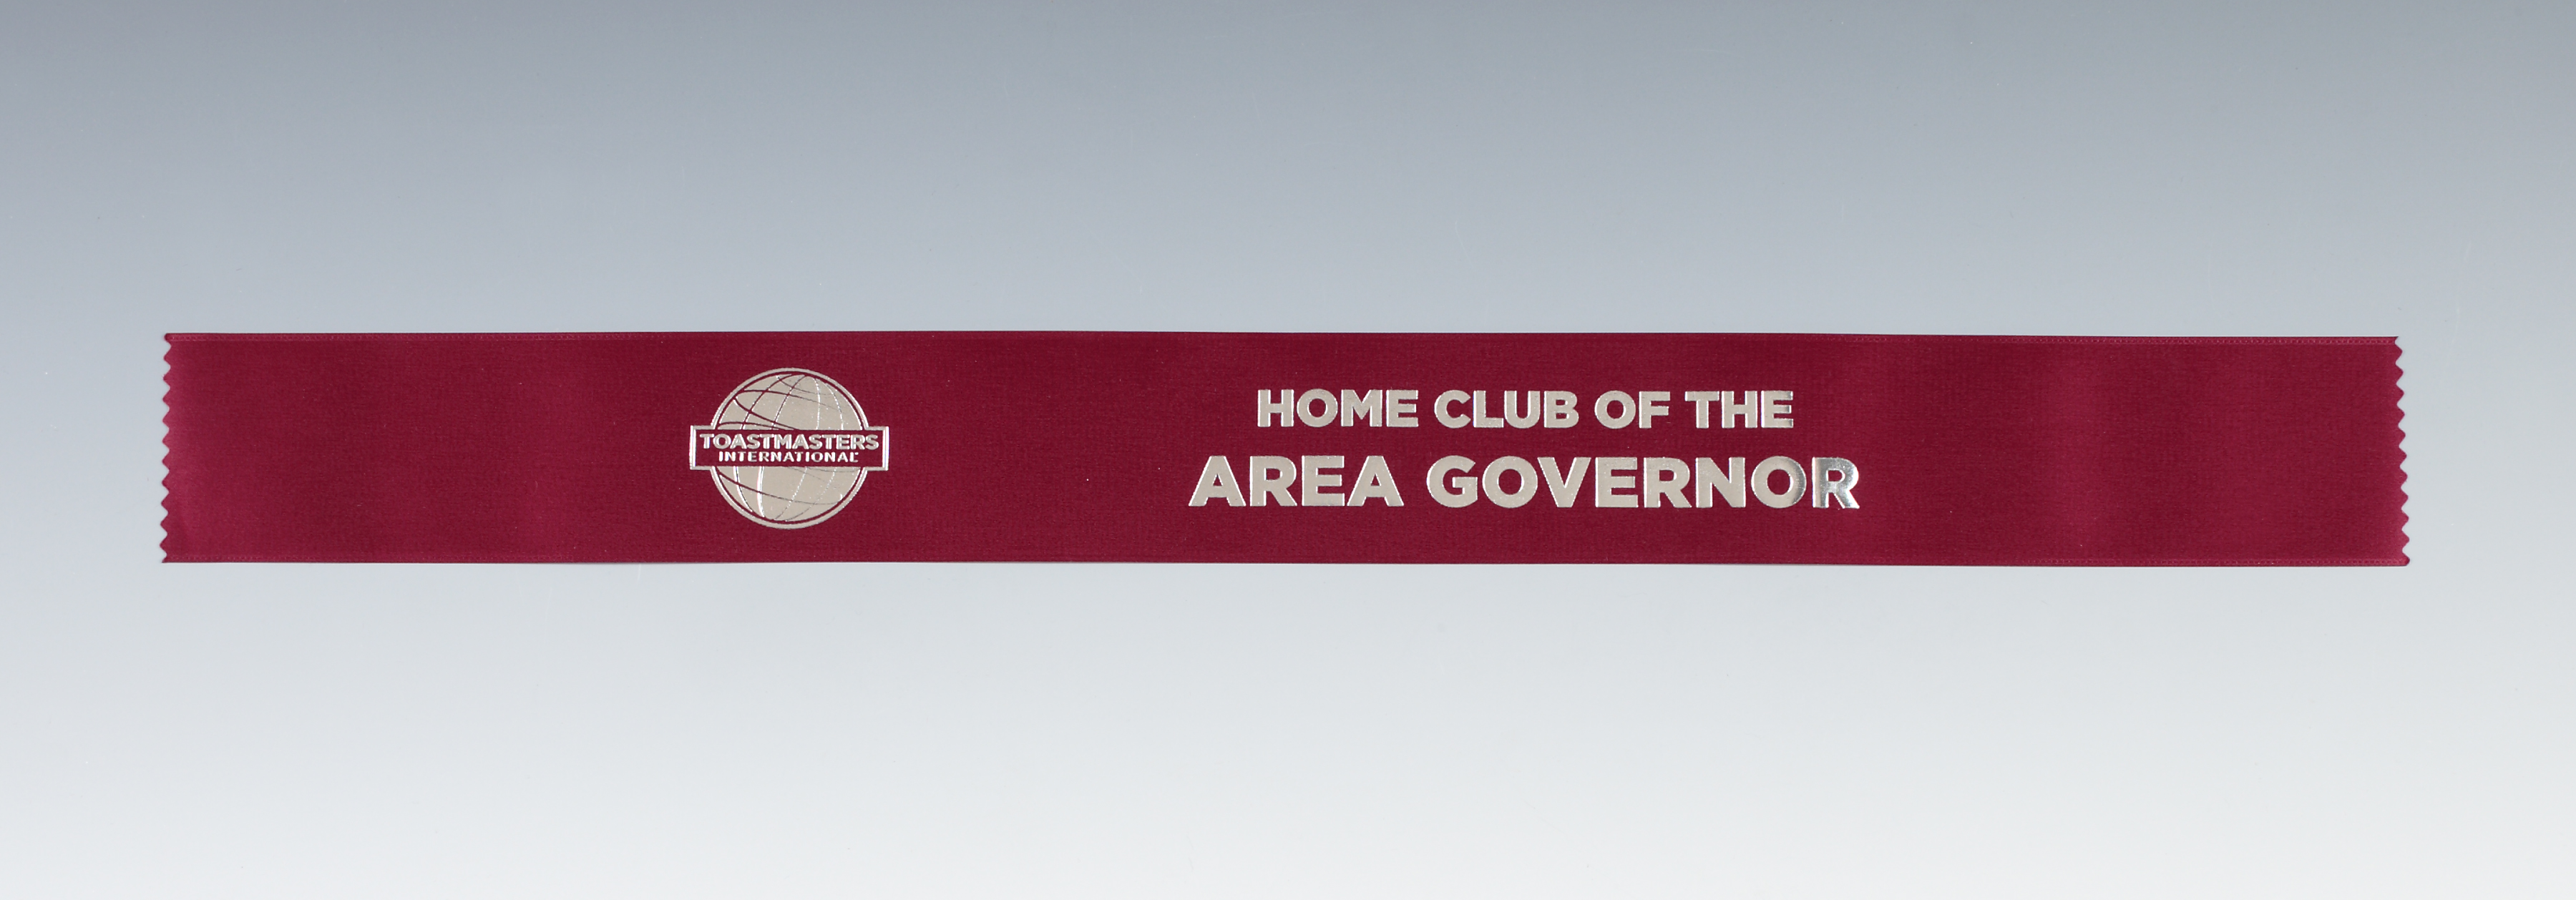 Home Club of the Area Governor Ribbon